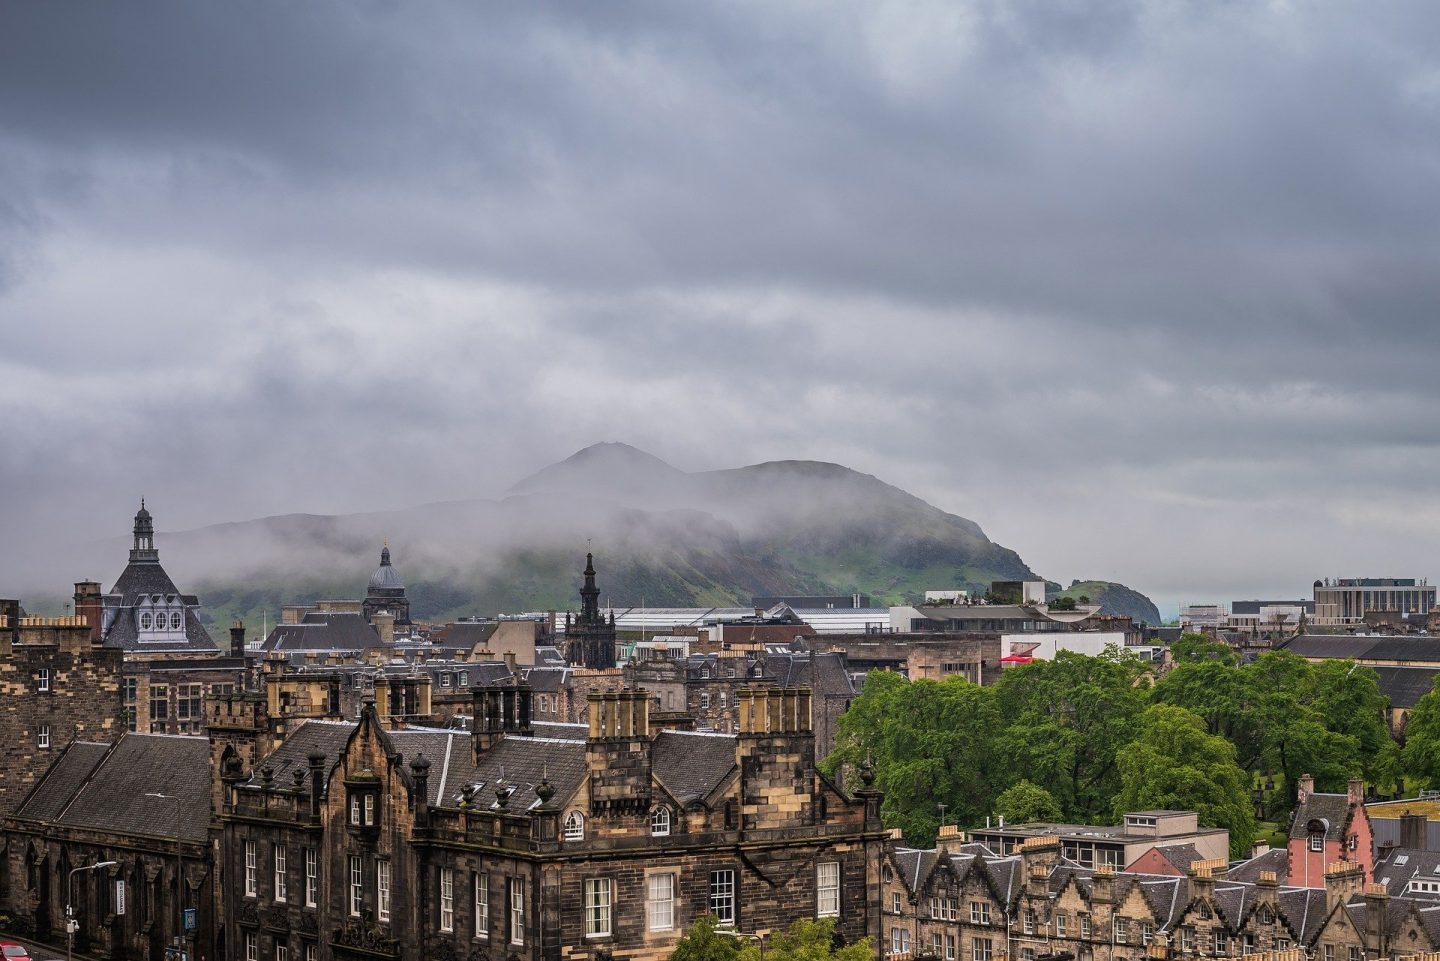 The rooftops over Edinburgh